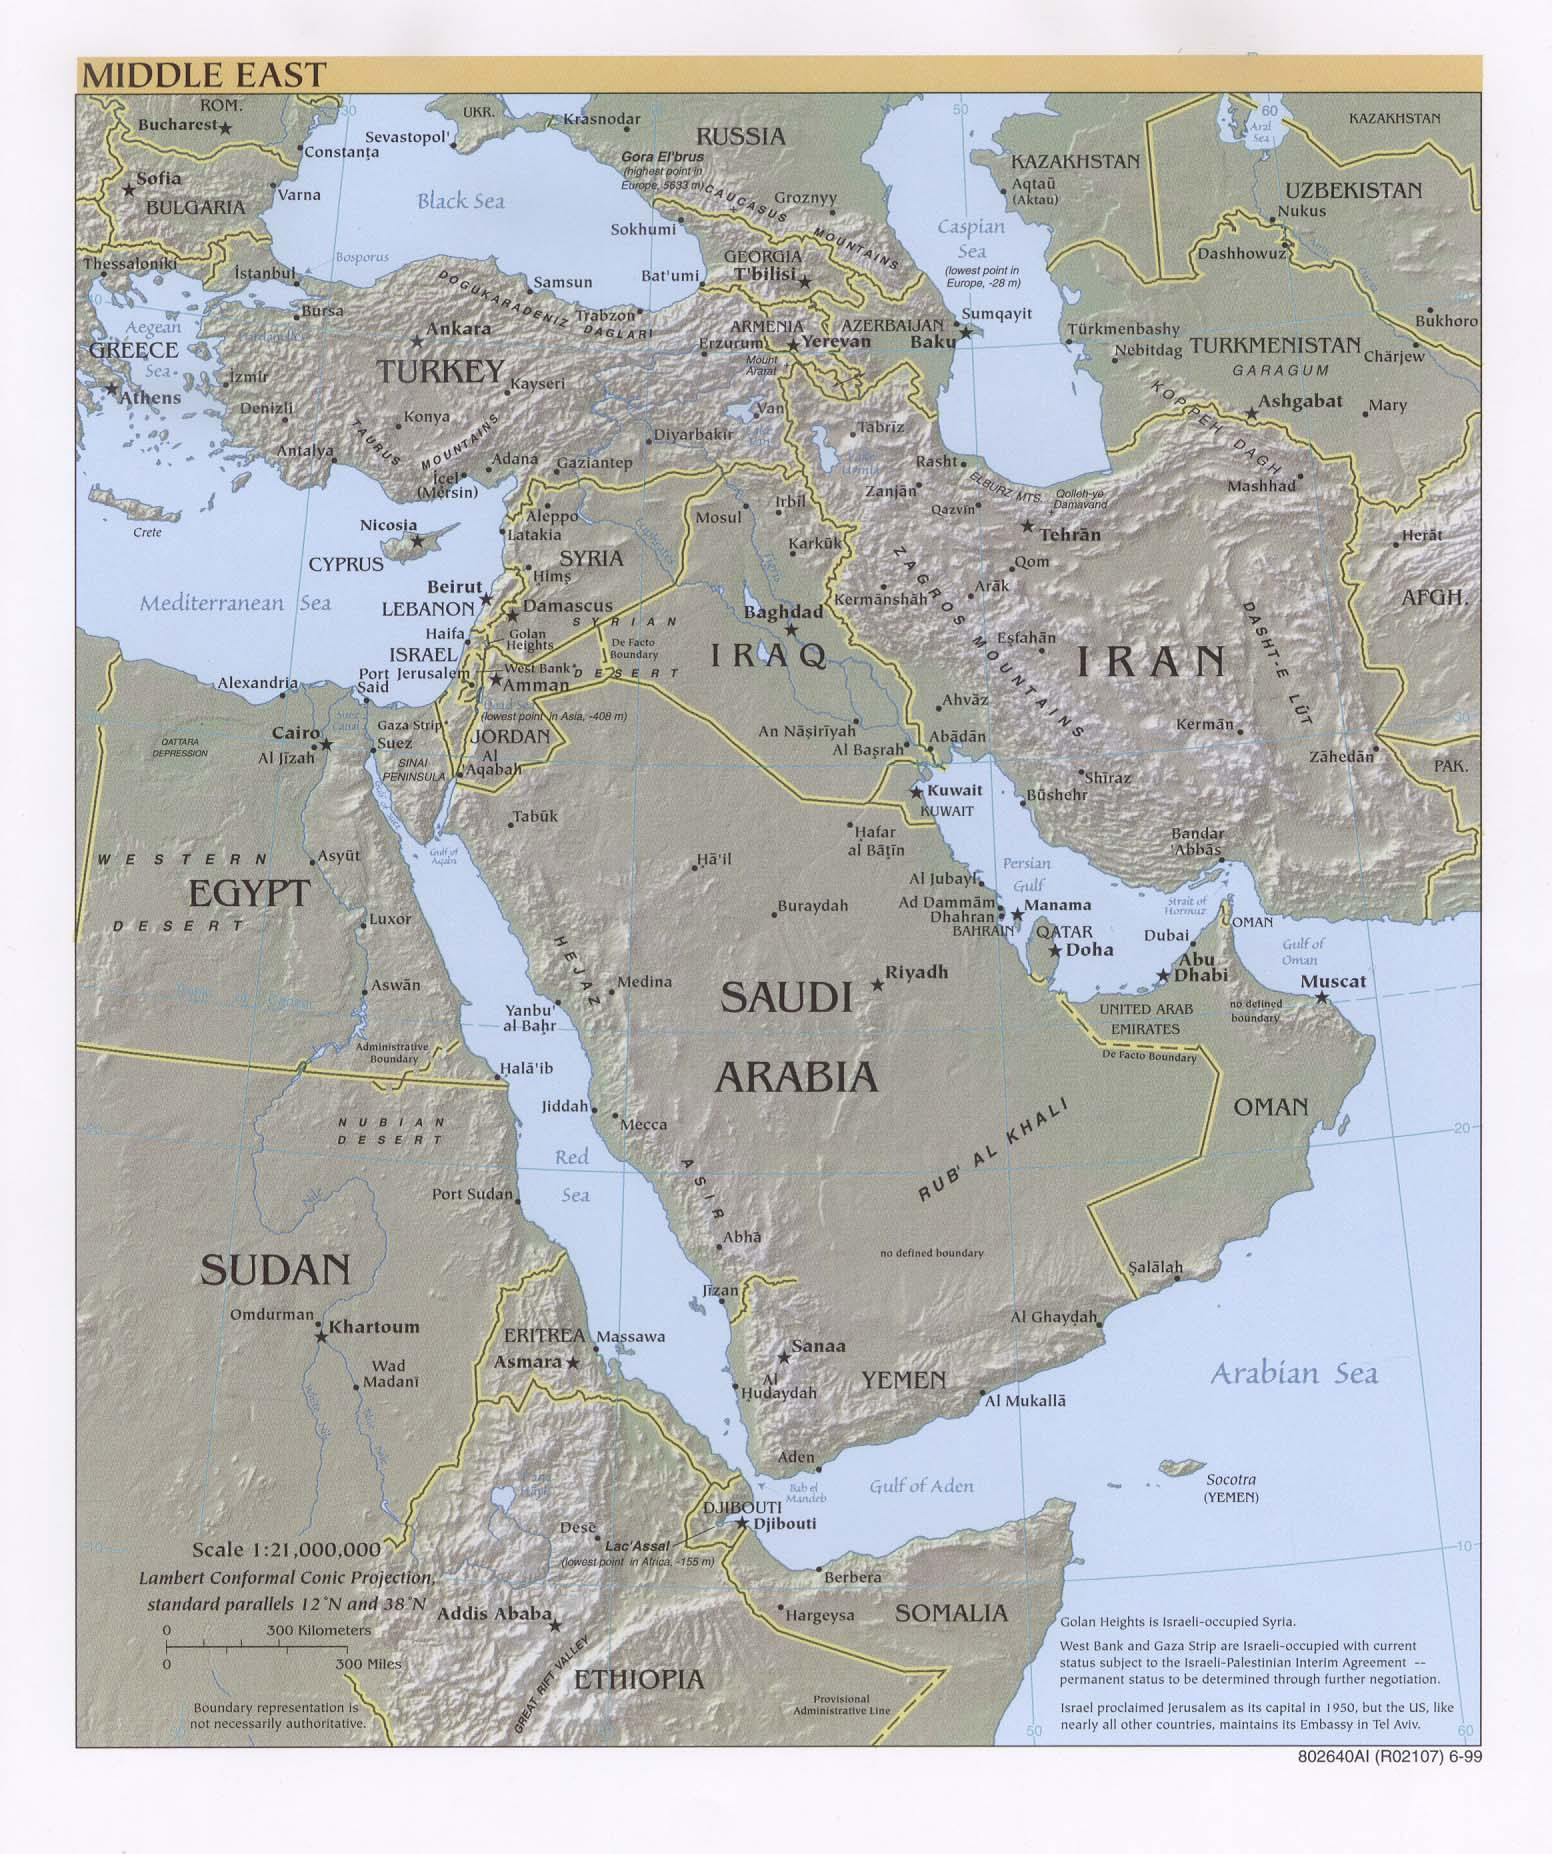 Middle East physical map 1999